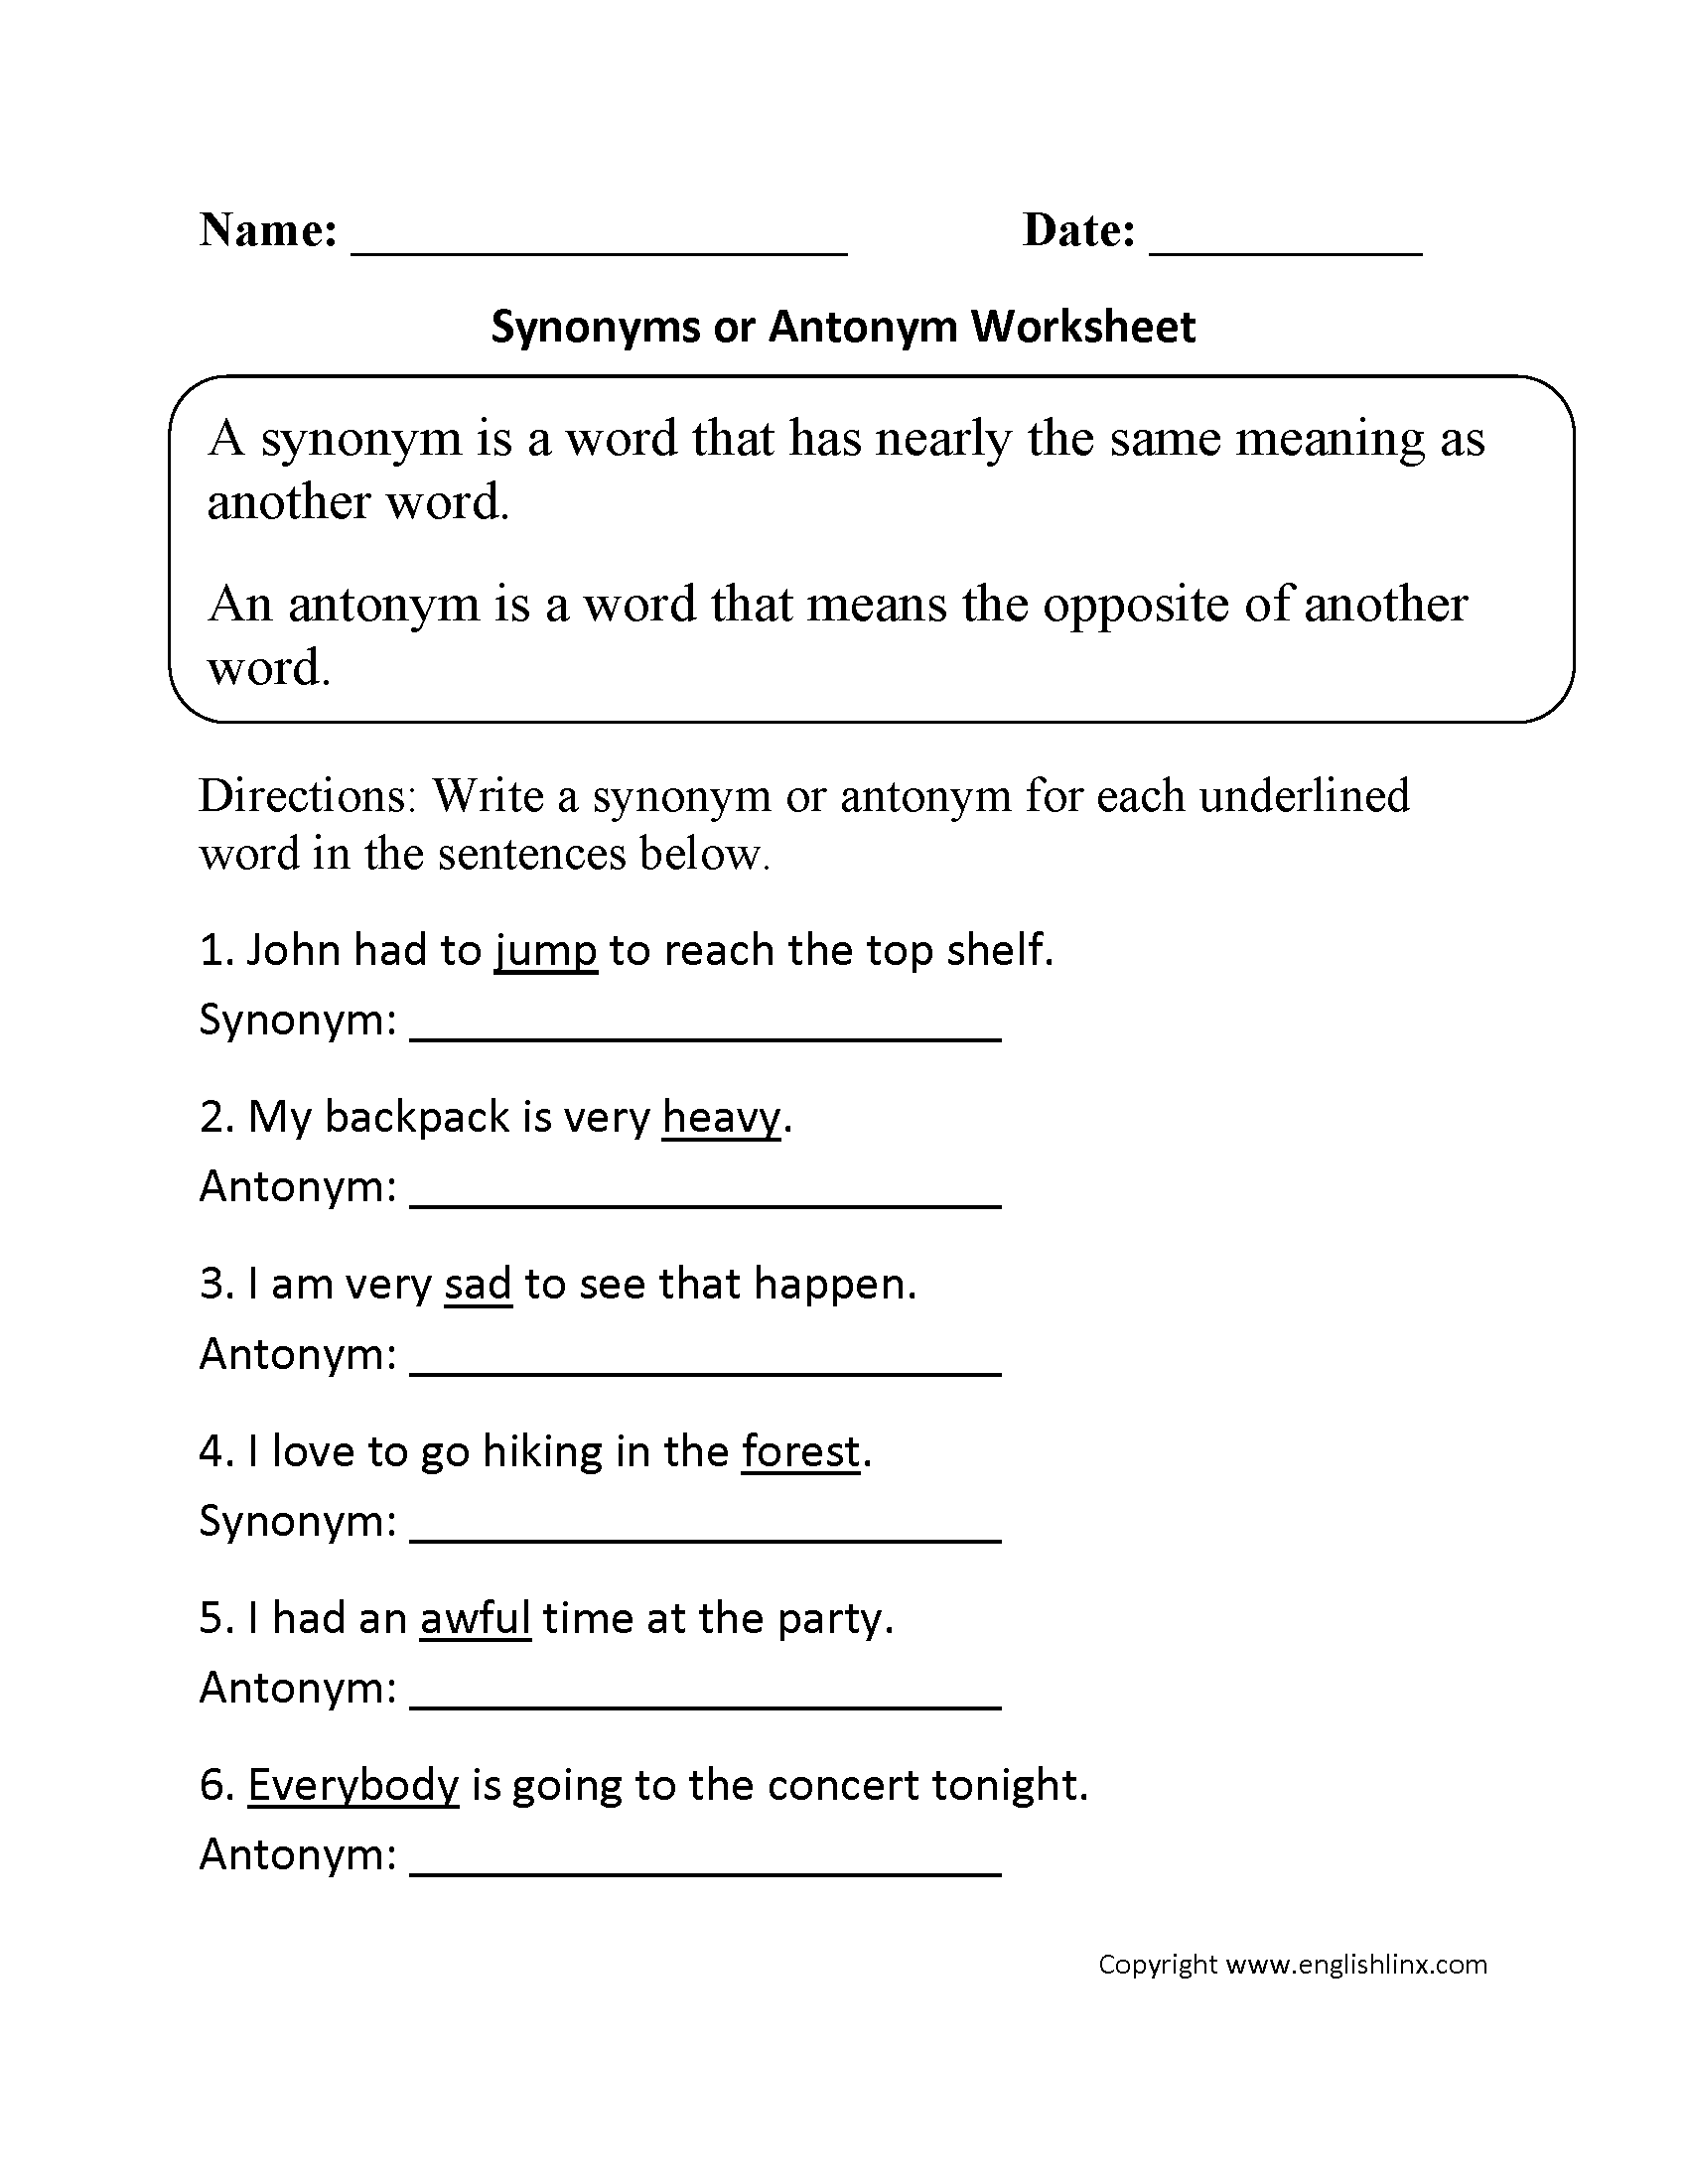 Printables 8th Grade Vocabulary Worksheets vocabulary worksheets synonym and antonym worksheet